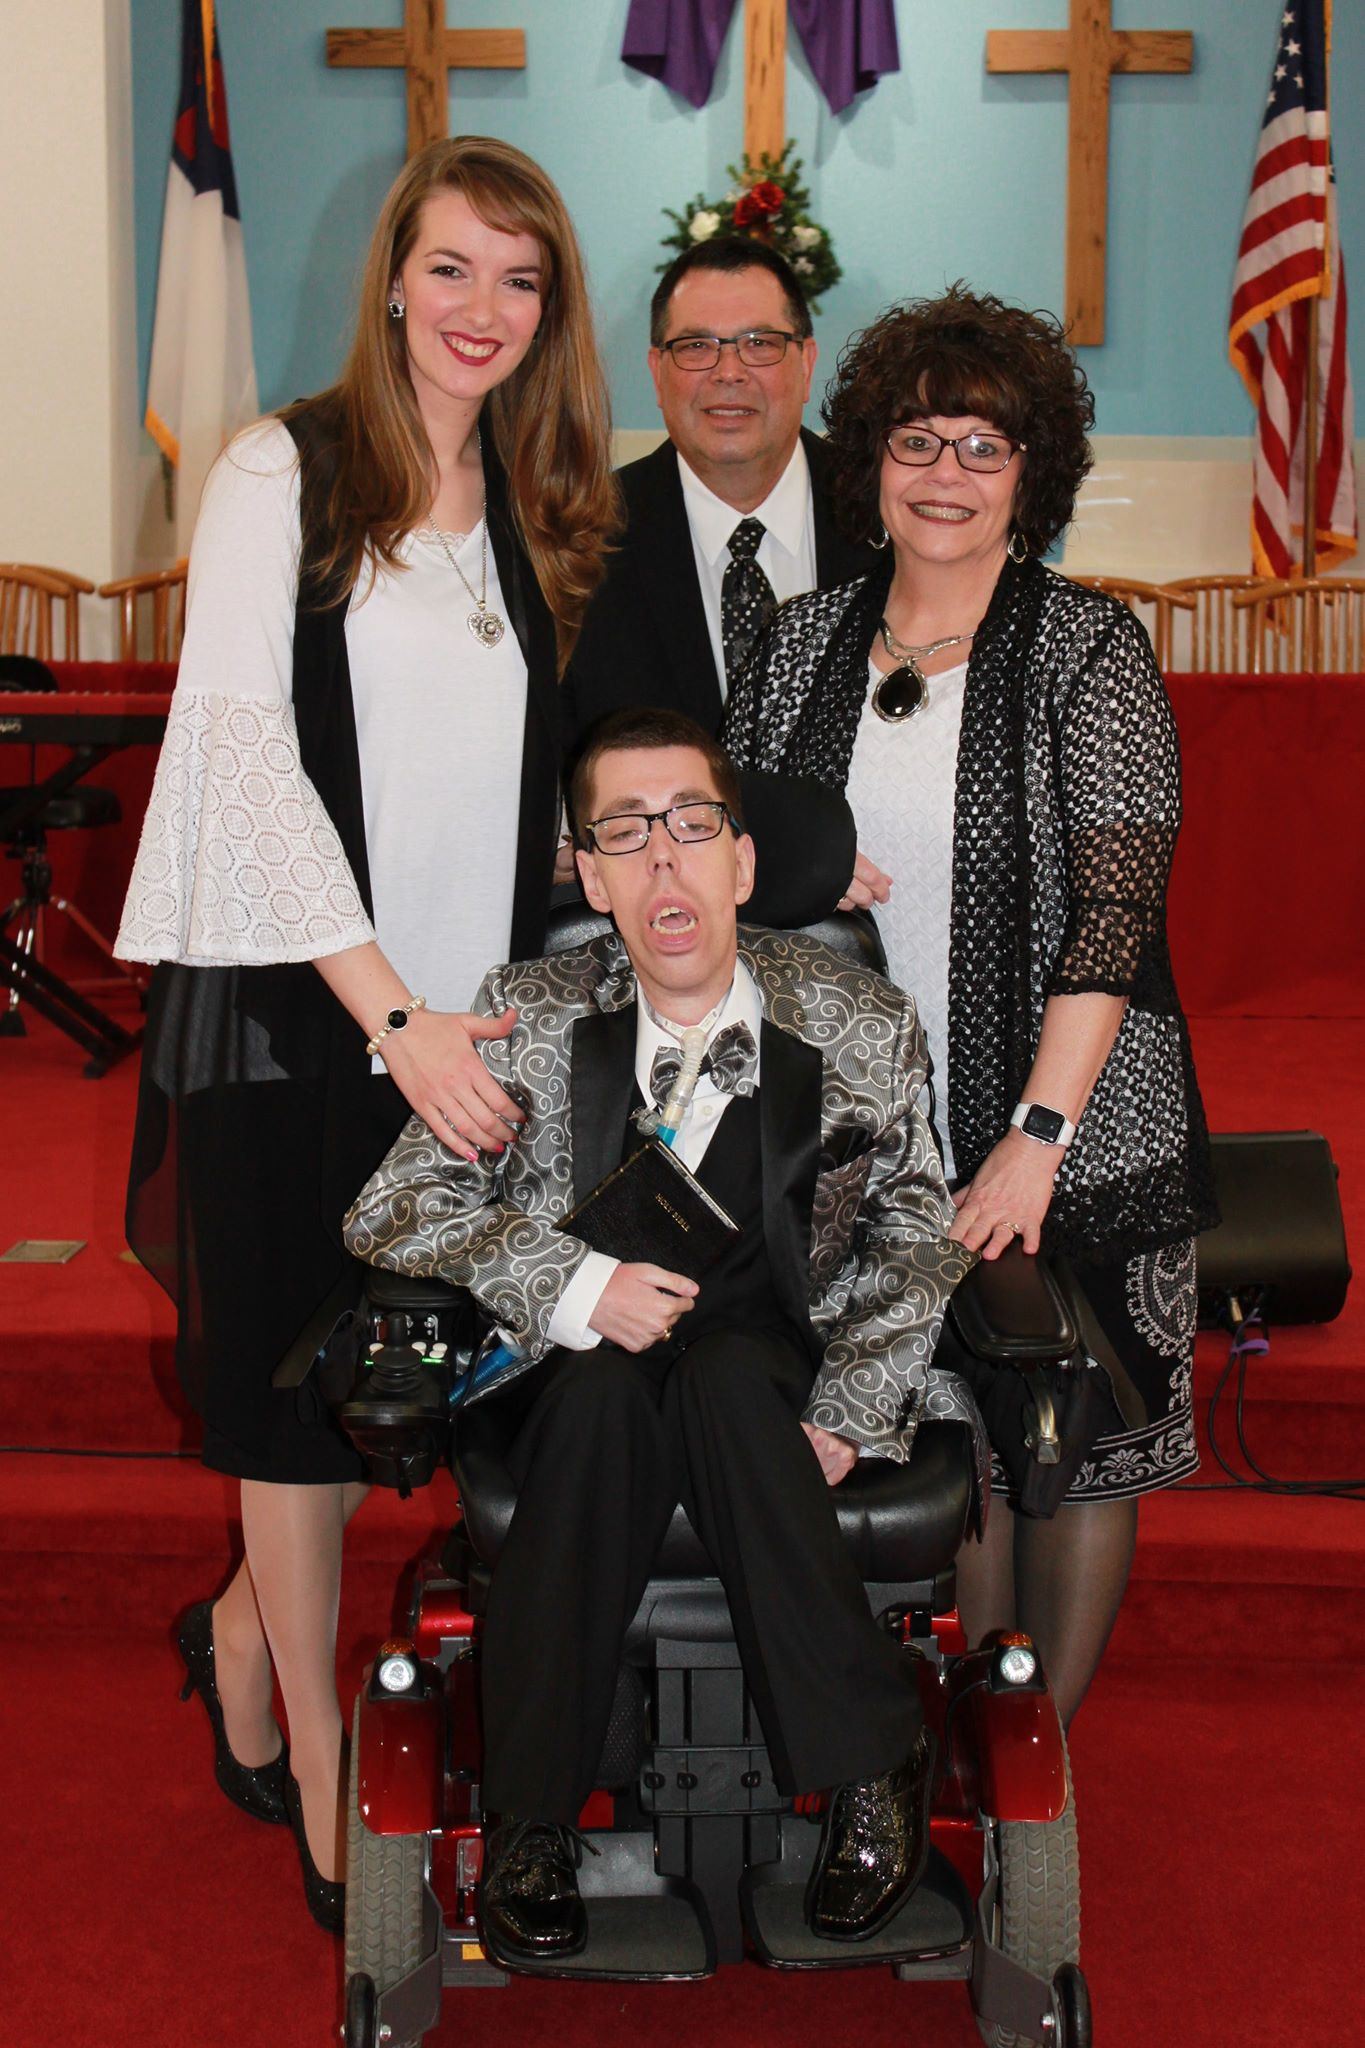 Brother Jacob Berry, wife, and family.